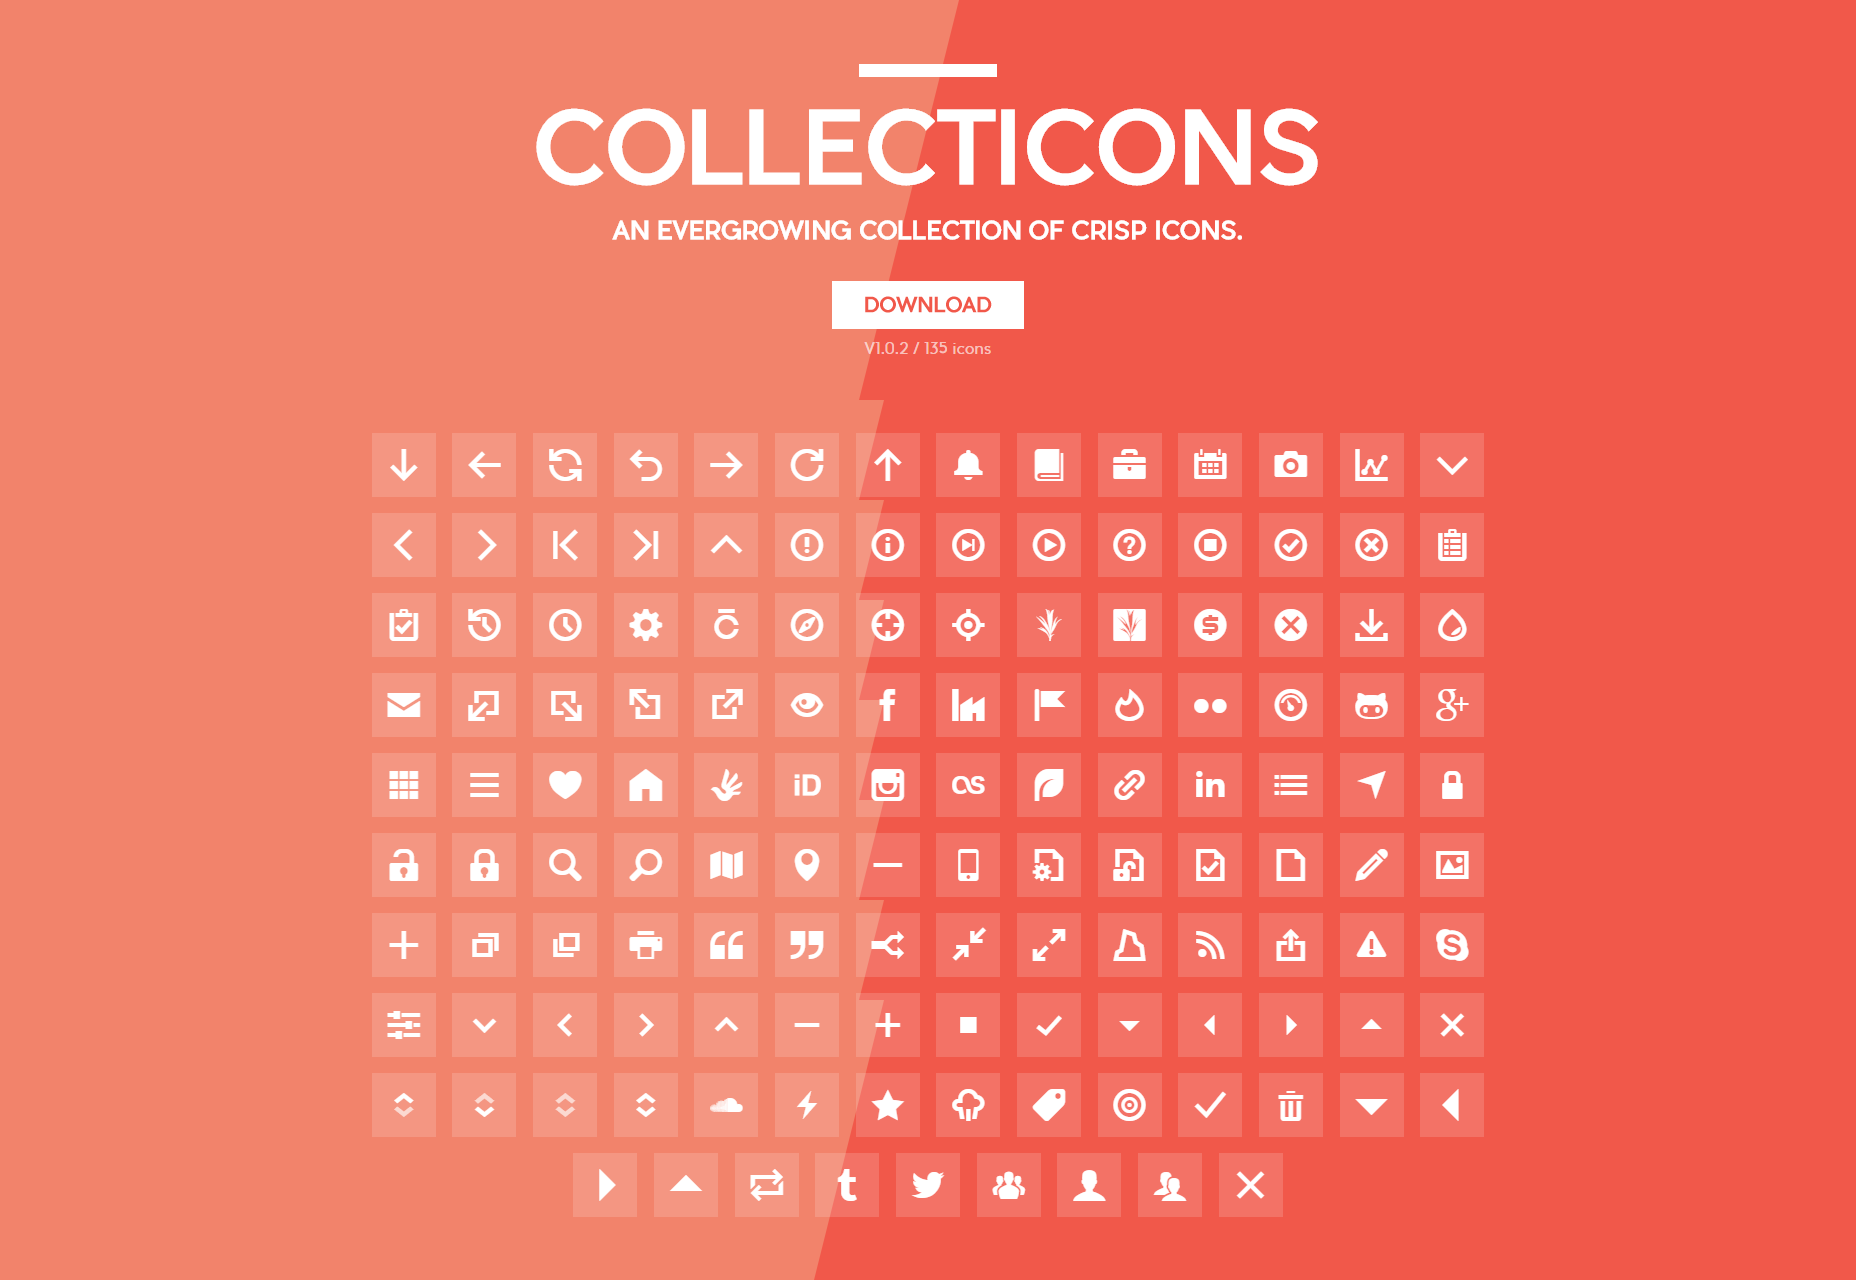 collecticons-an-evergrowing-filled-web-icons-collection-